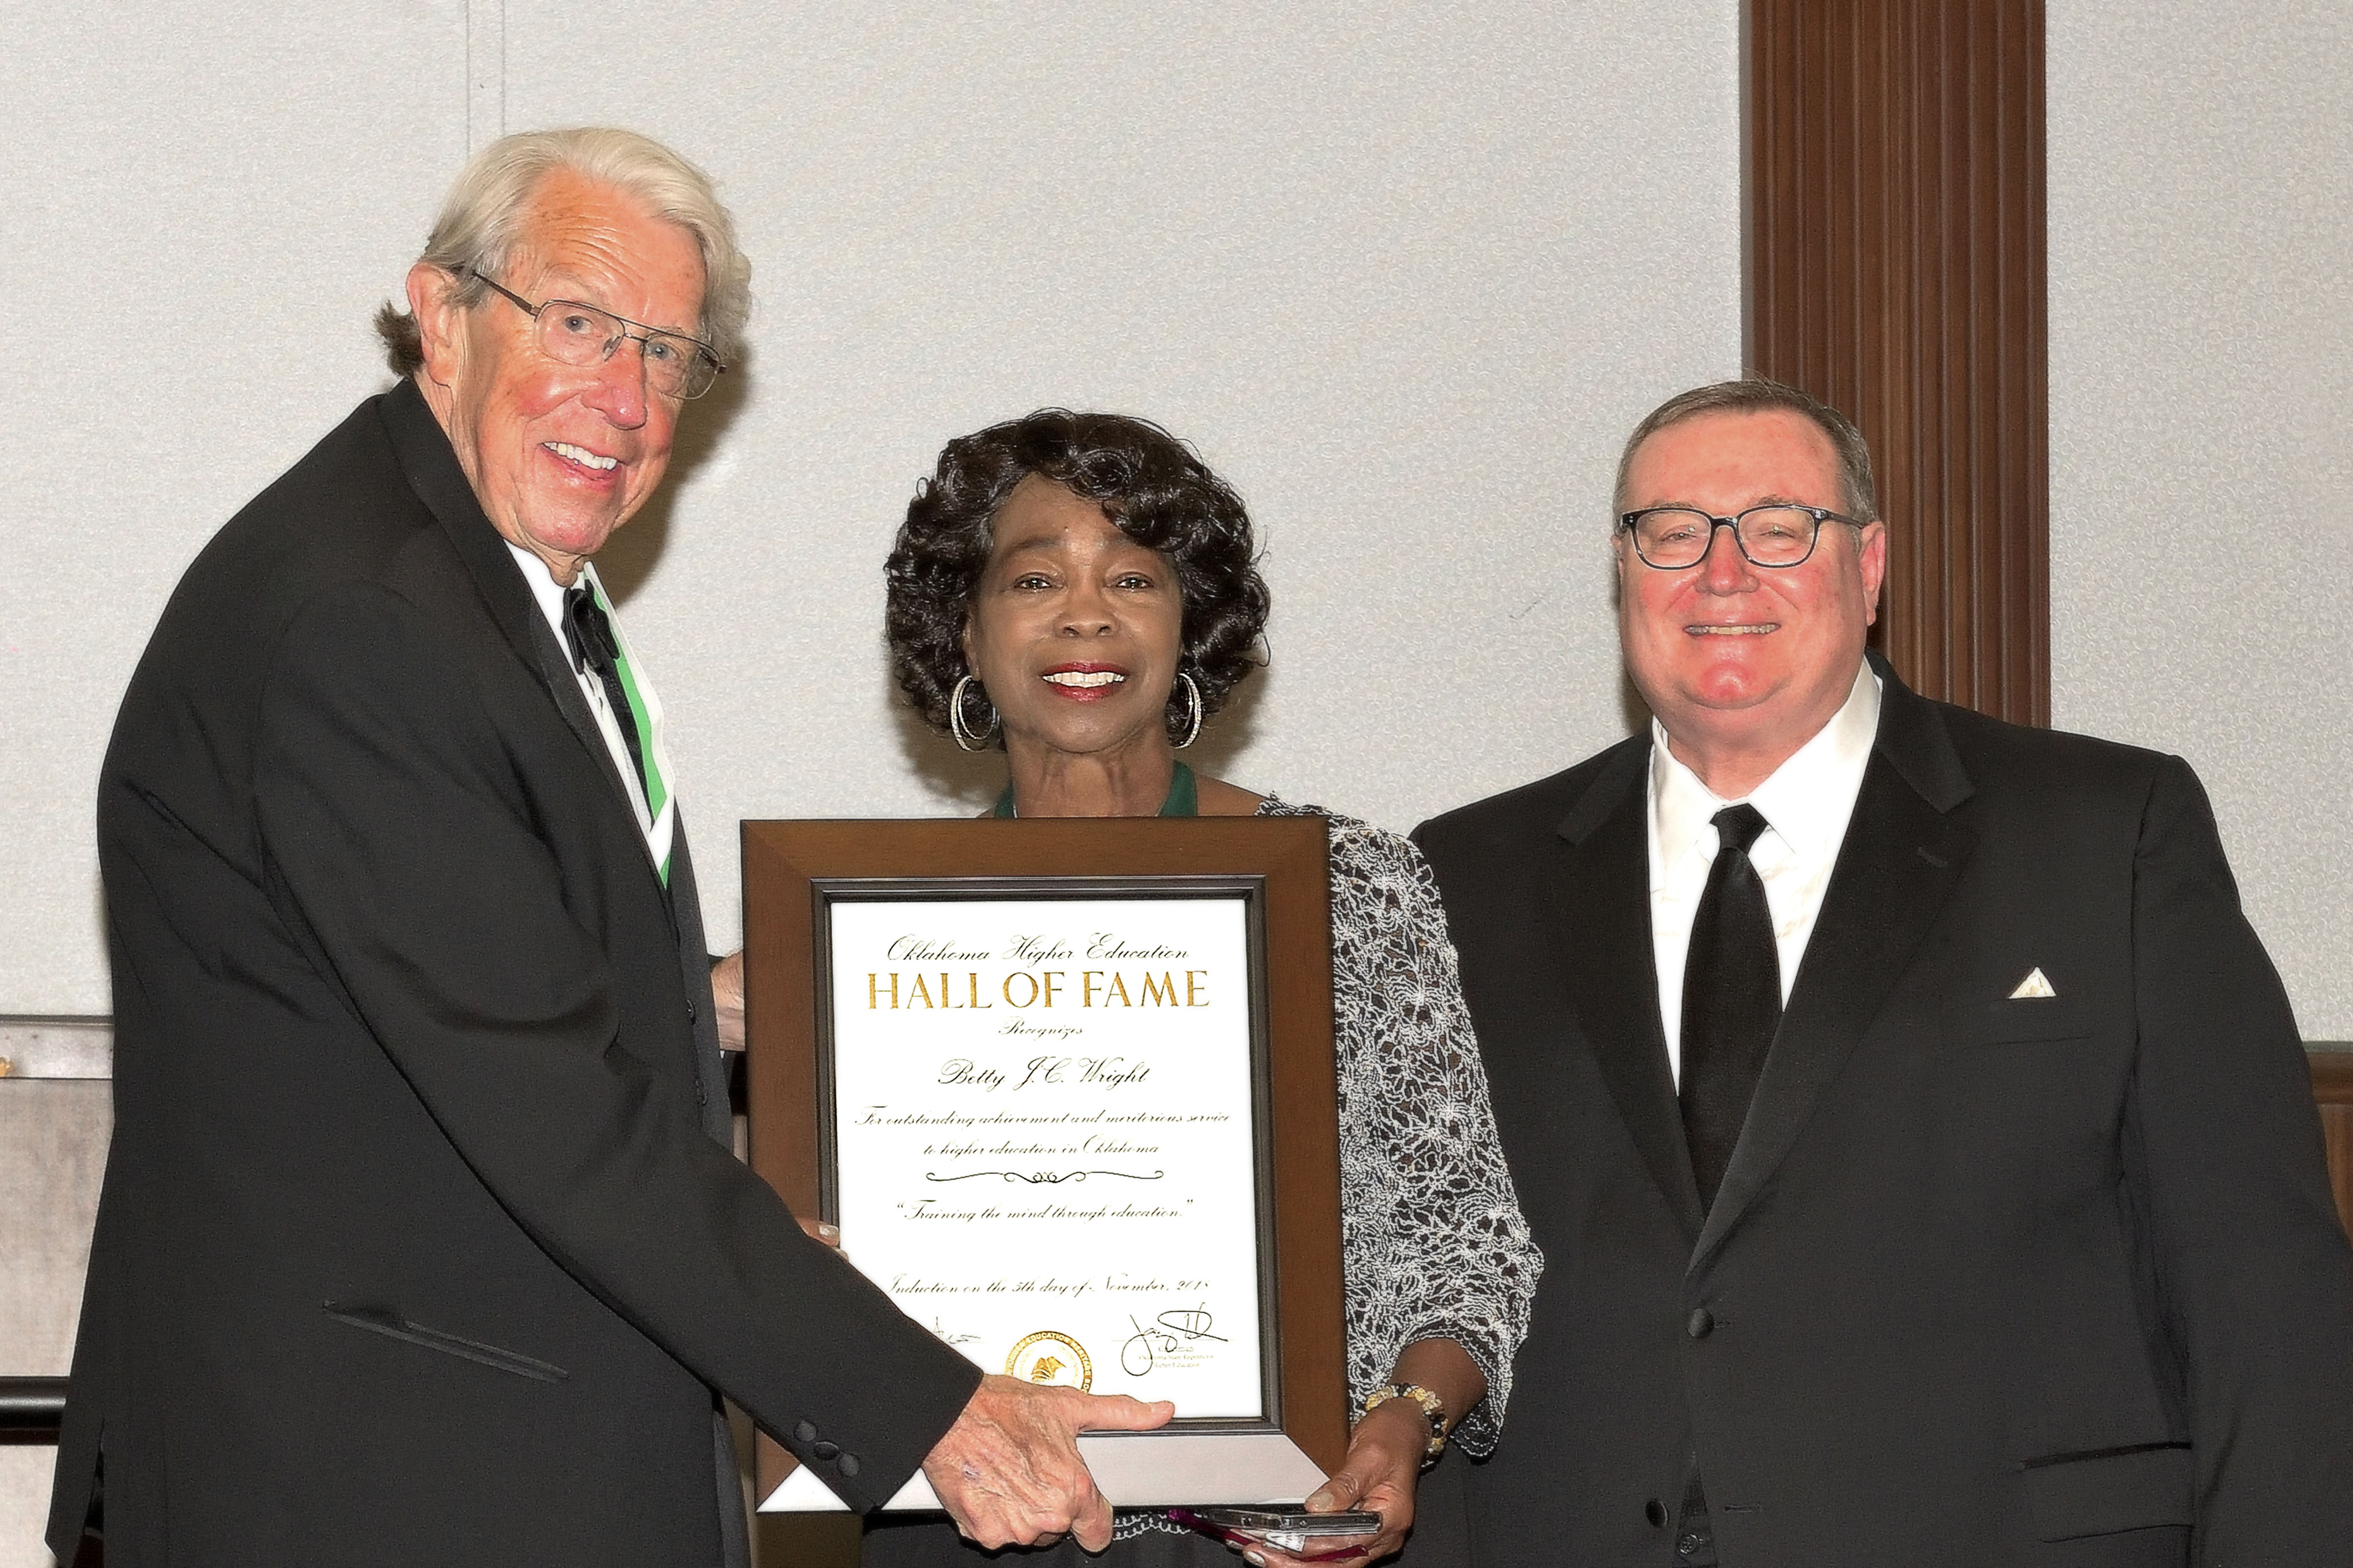 Rose State College Regent Betty J.C. Wright poses with her Oklahoma Education Hall of Fame award with John Feaver, President, Oklahoma Higher Education Heritage Society and Glen D. Johnson, Chancellor of the Oklahoma State Regents for Higher Education.